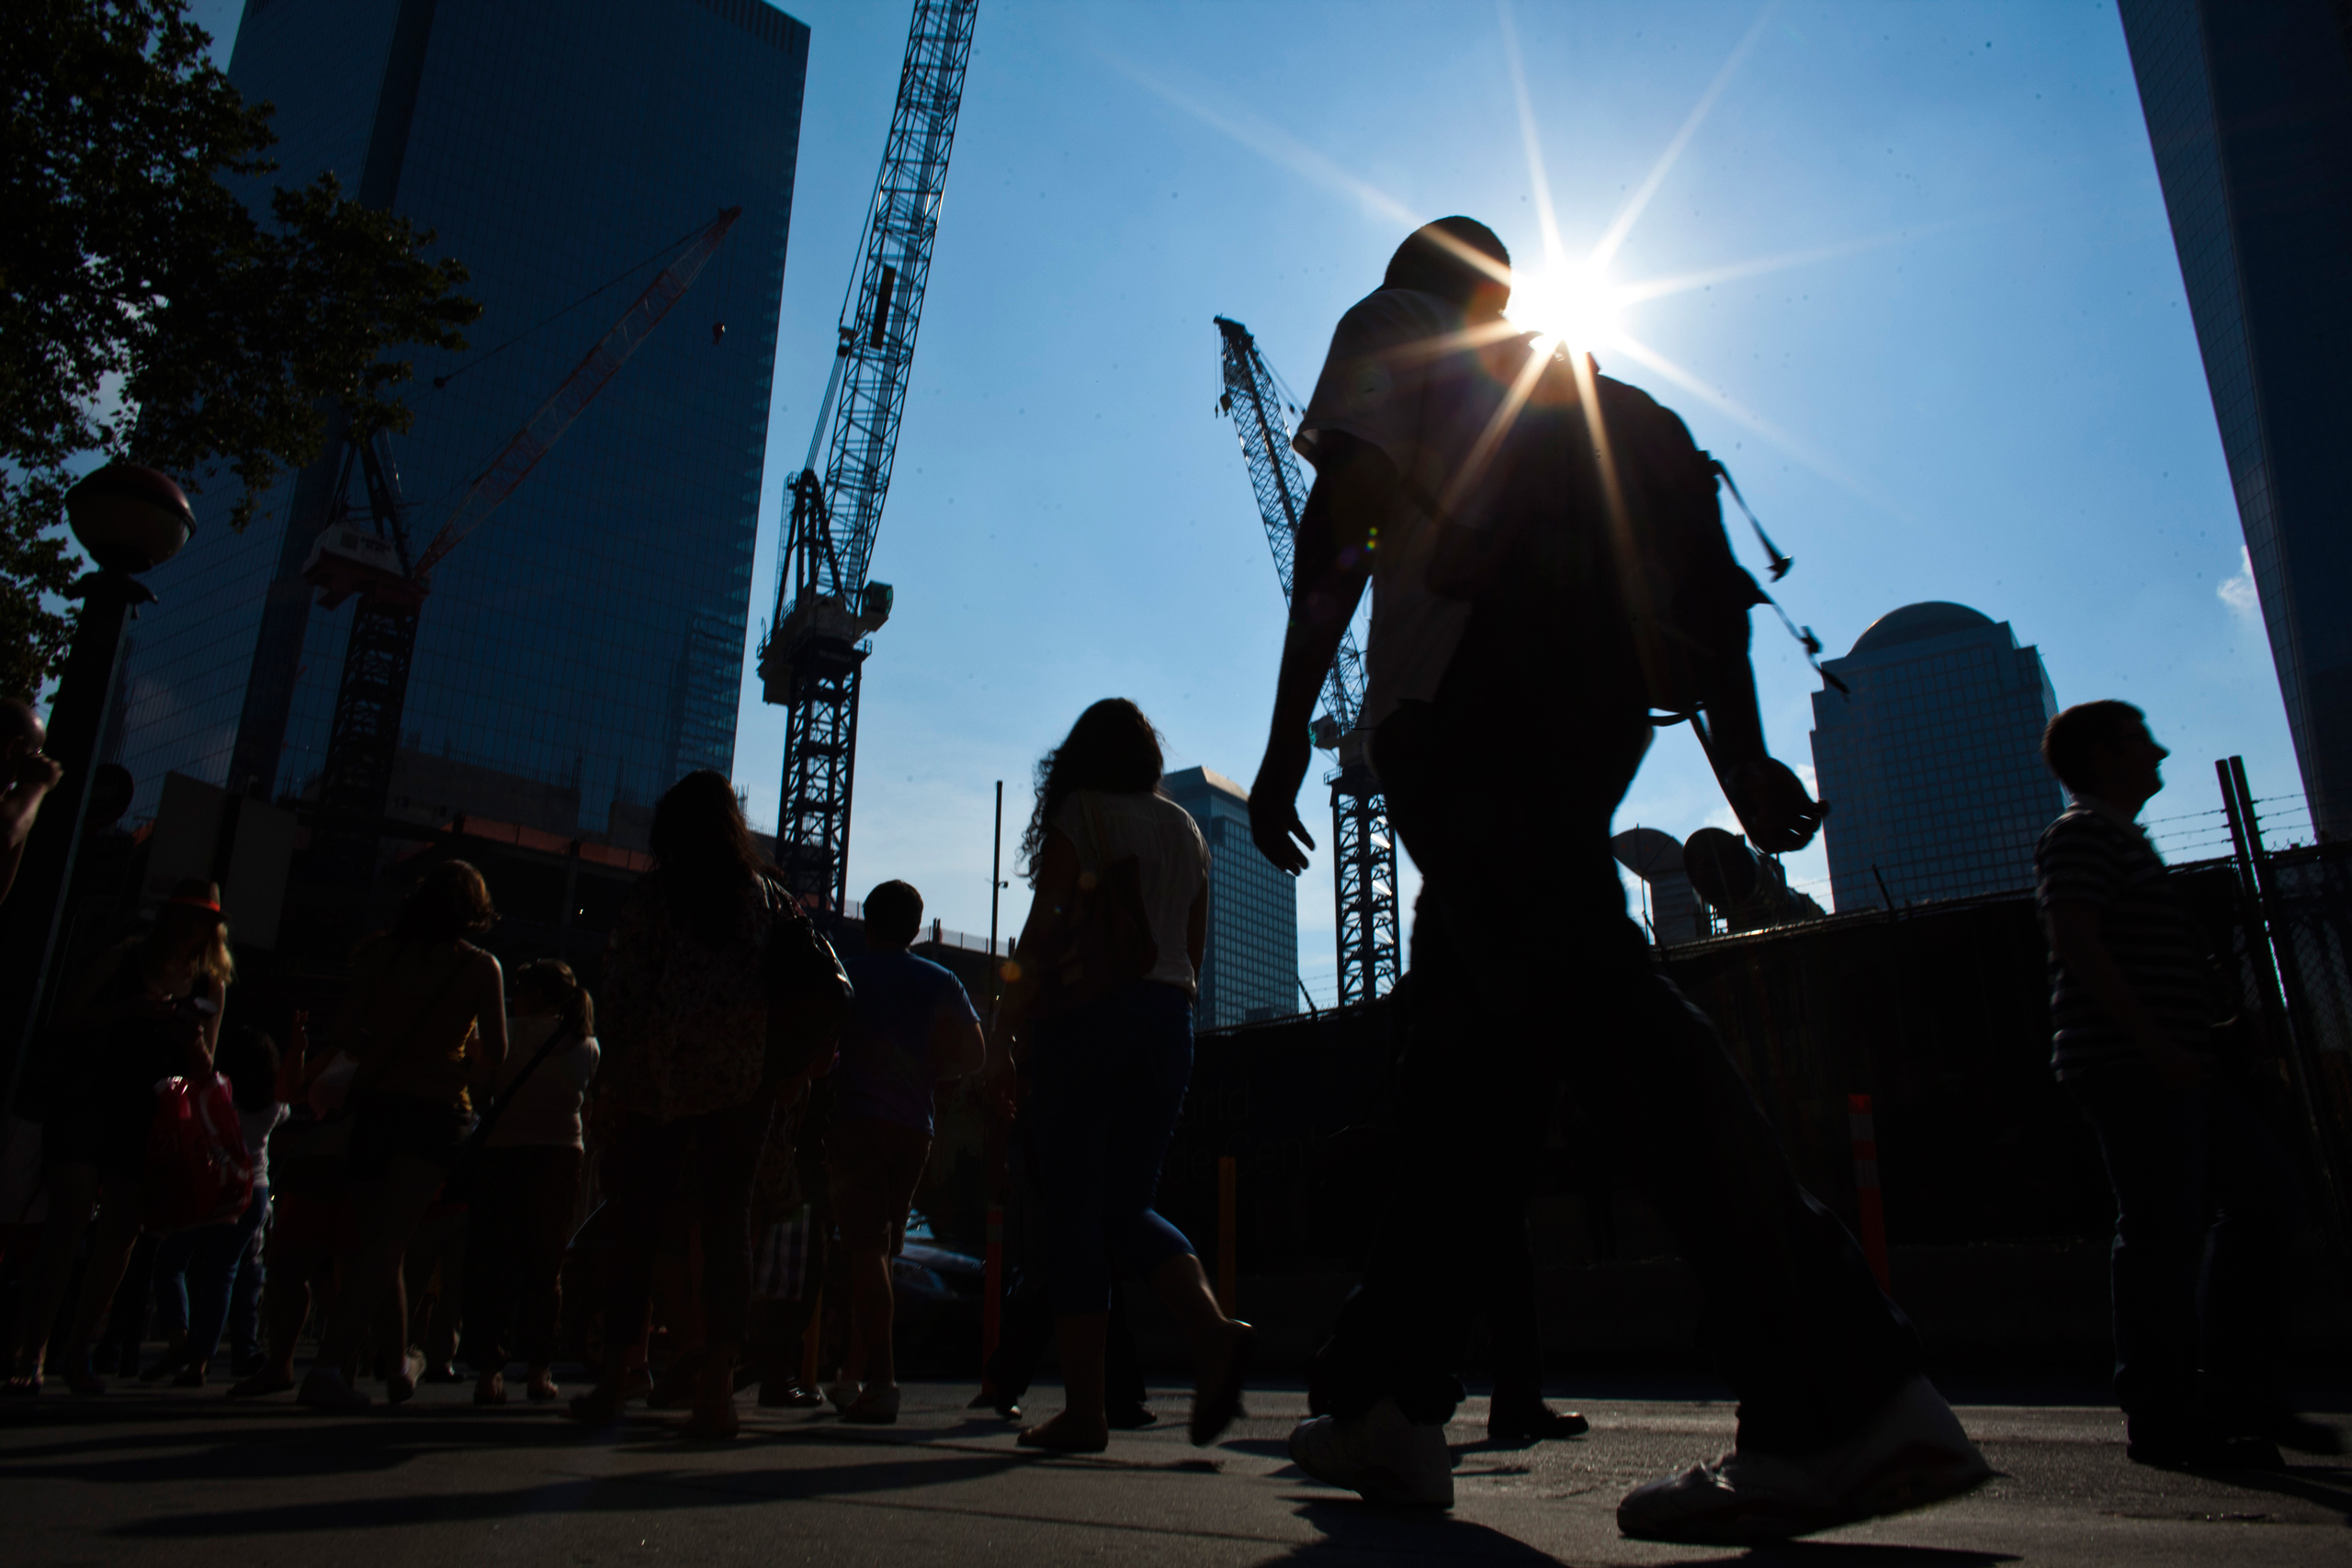 People walk near the World Trade Center during a heat wave in New York July 19, 2013.